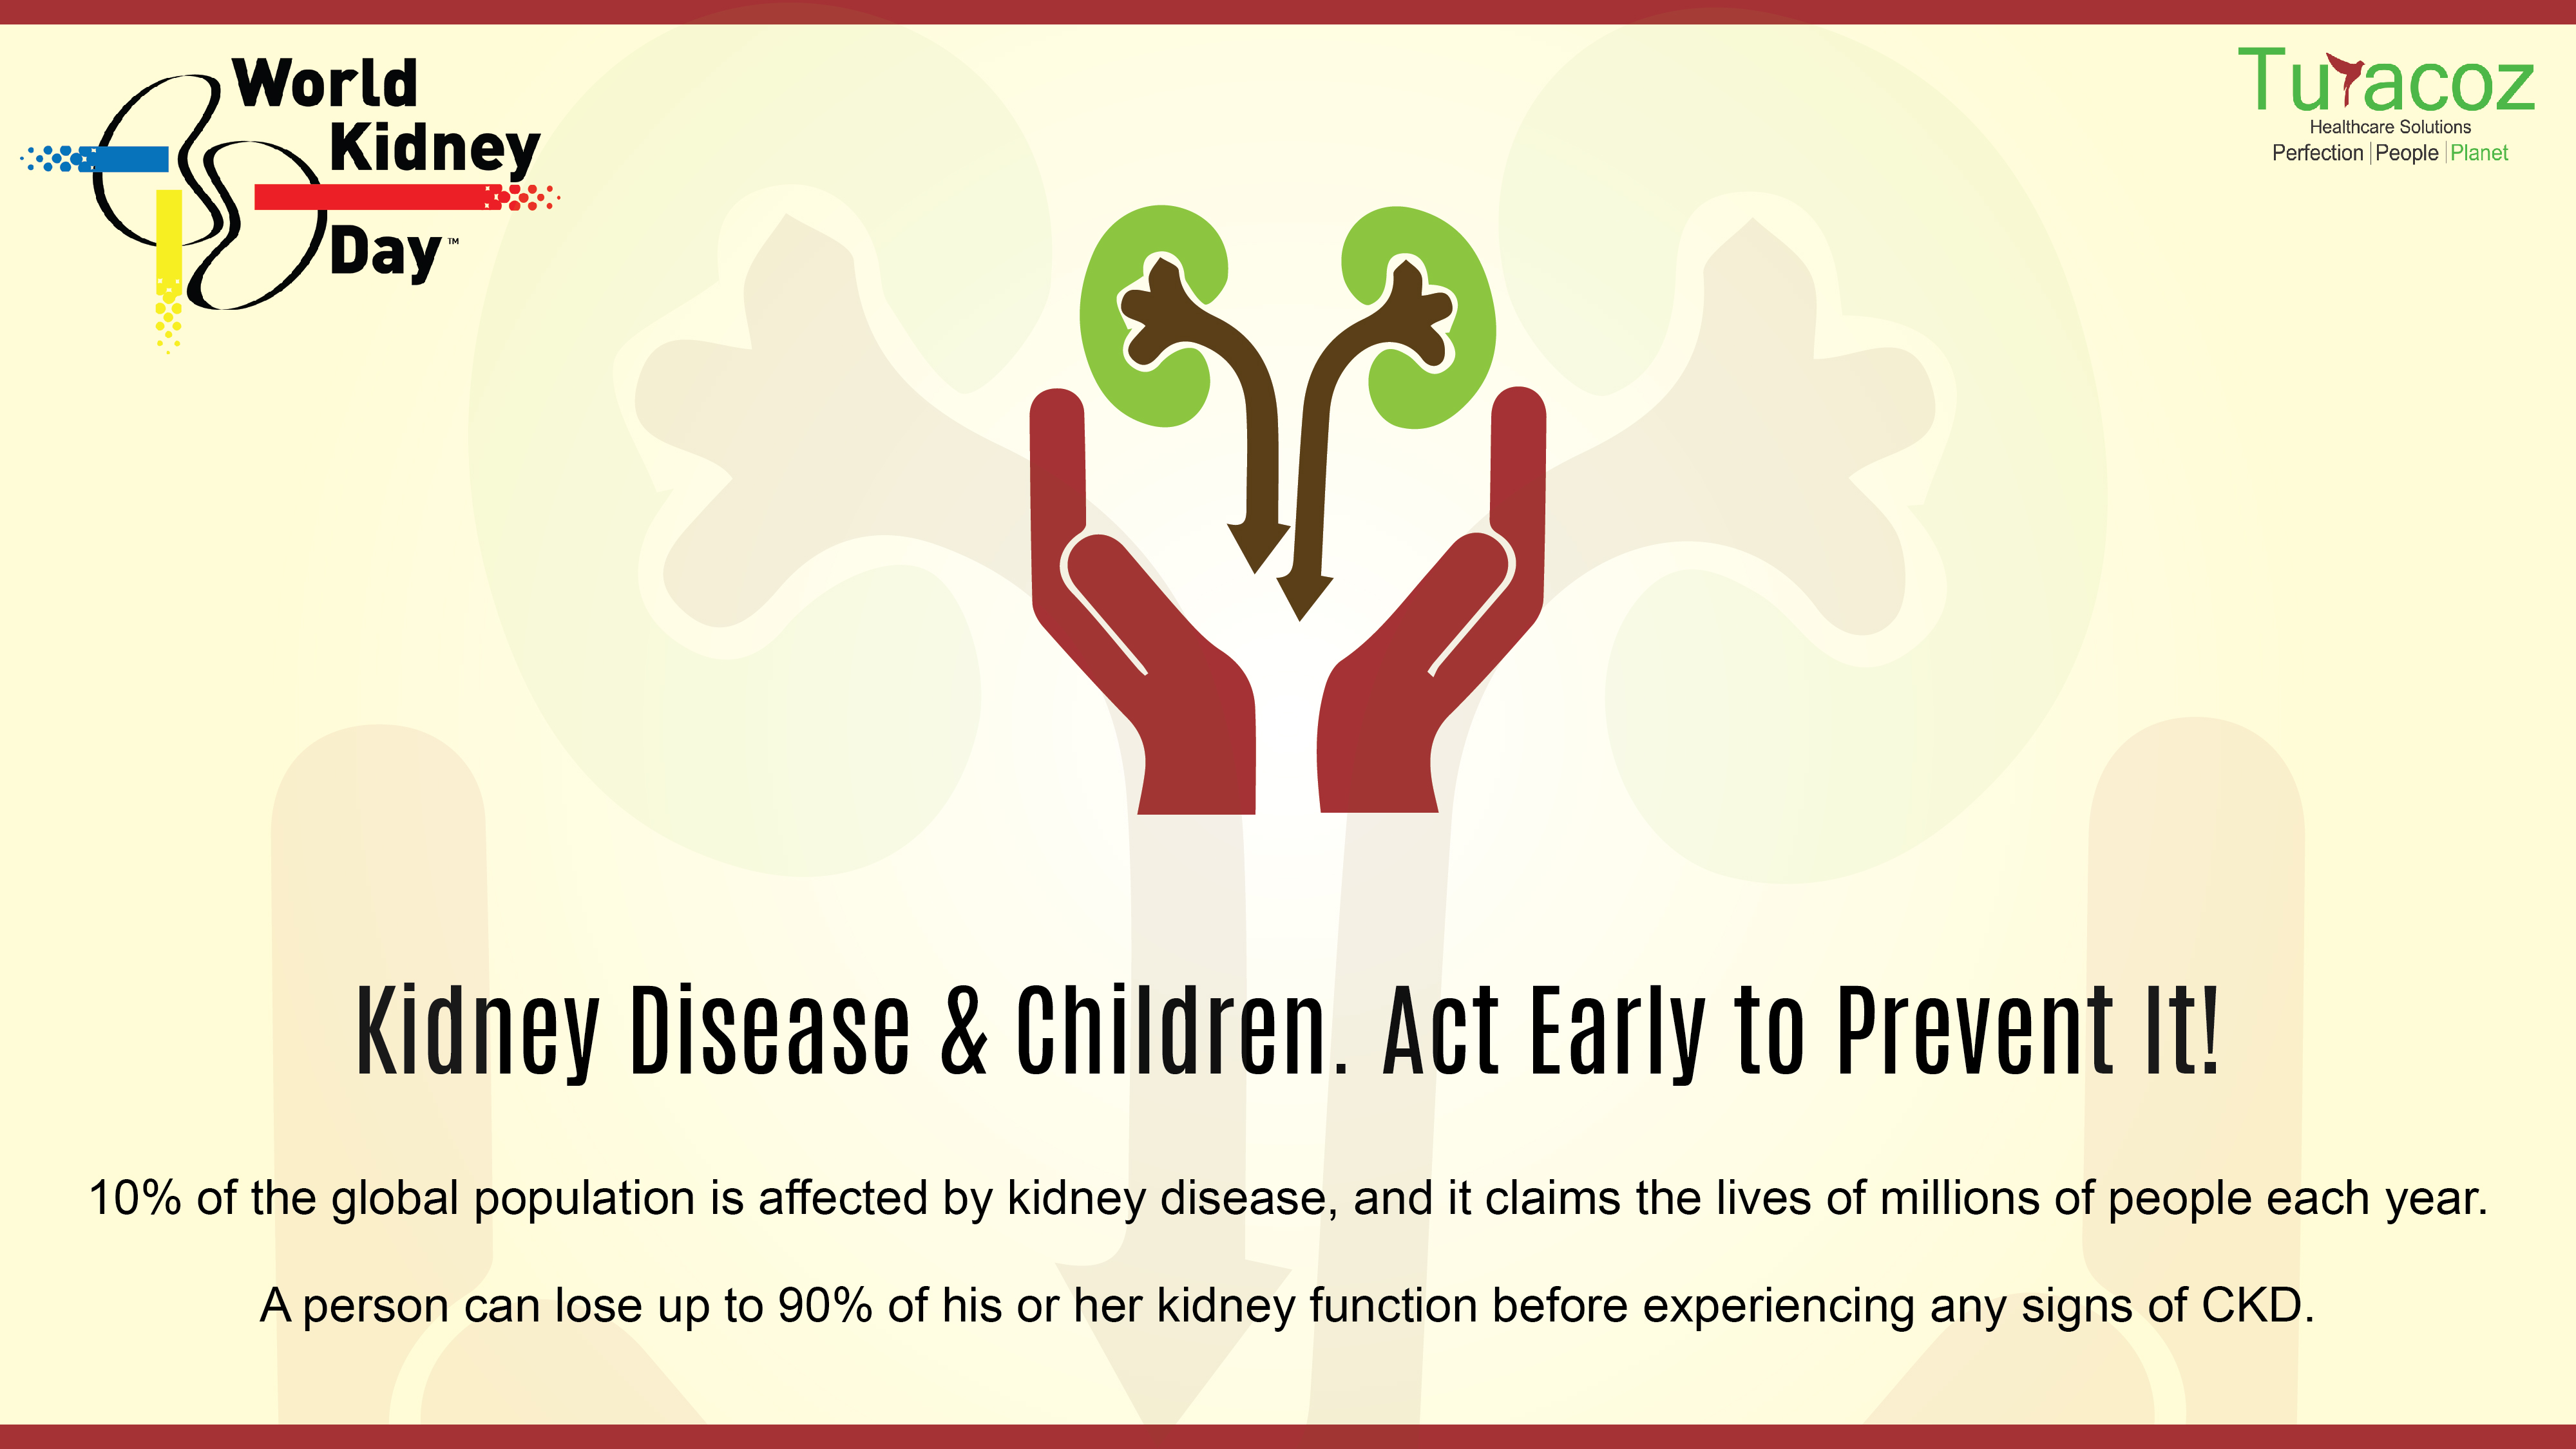 World Kidney Day Images The Best Image 2017